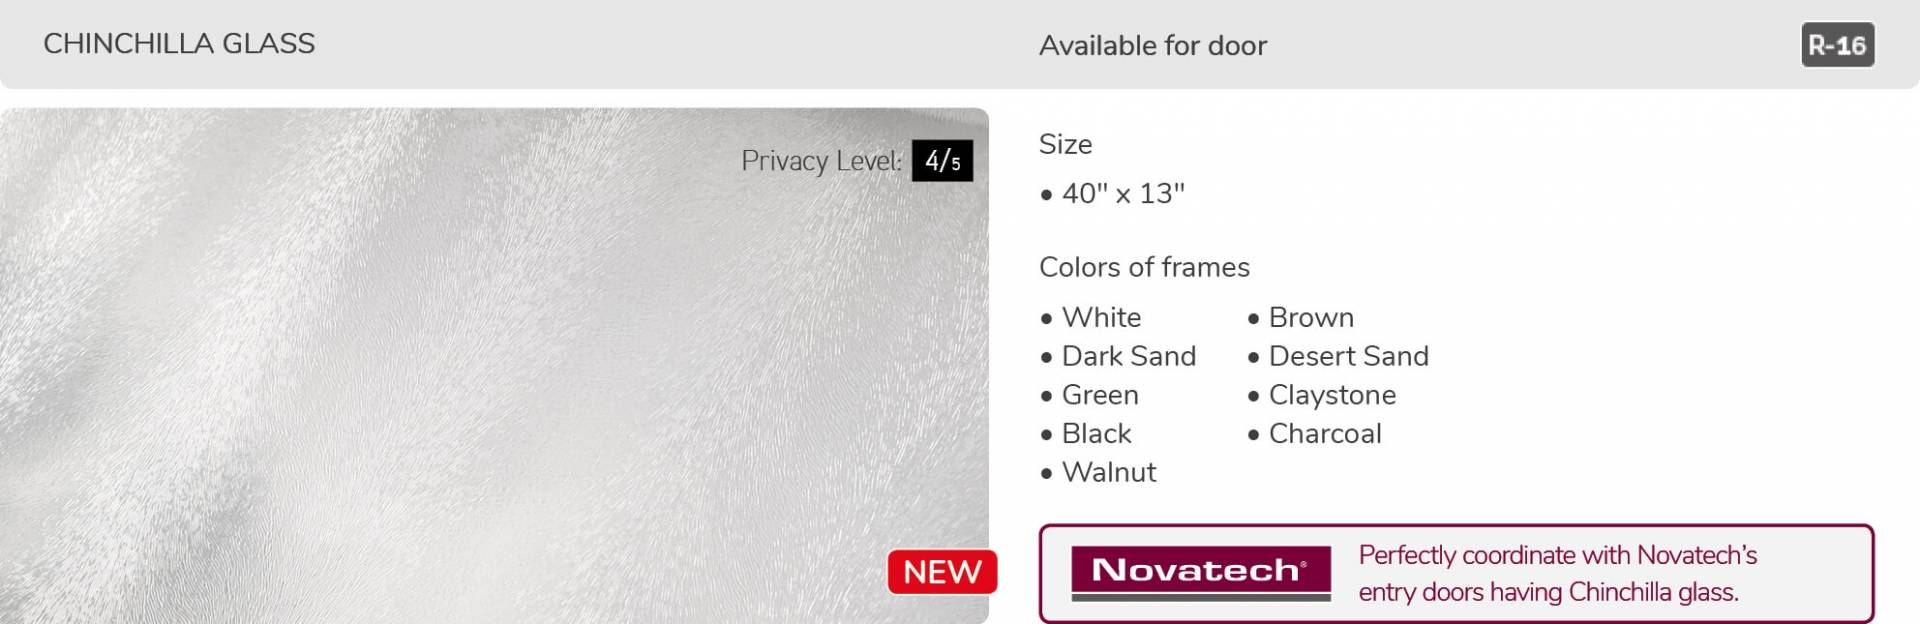 Chincilla glass, 40' x 13', available for door R-16